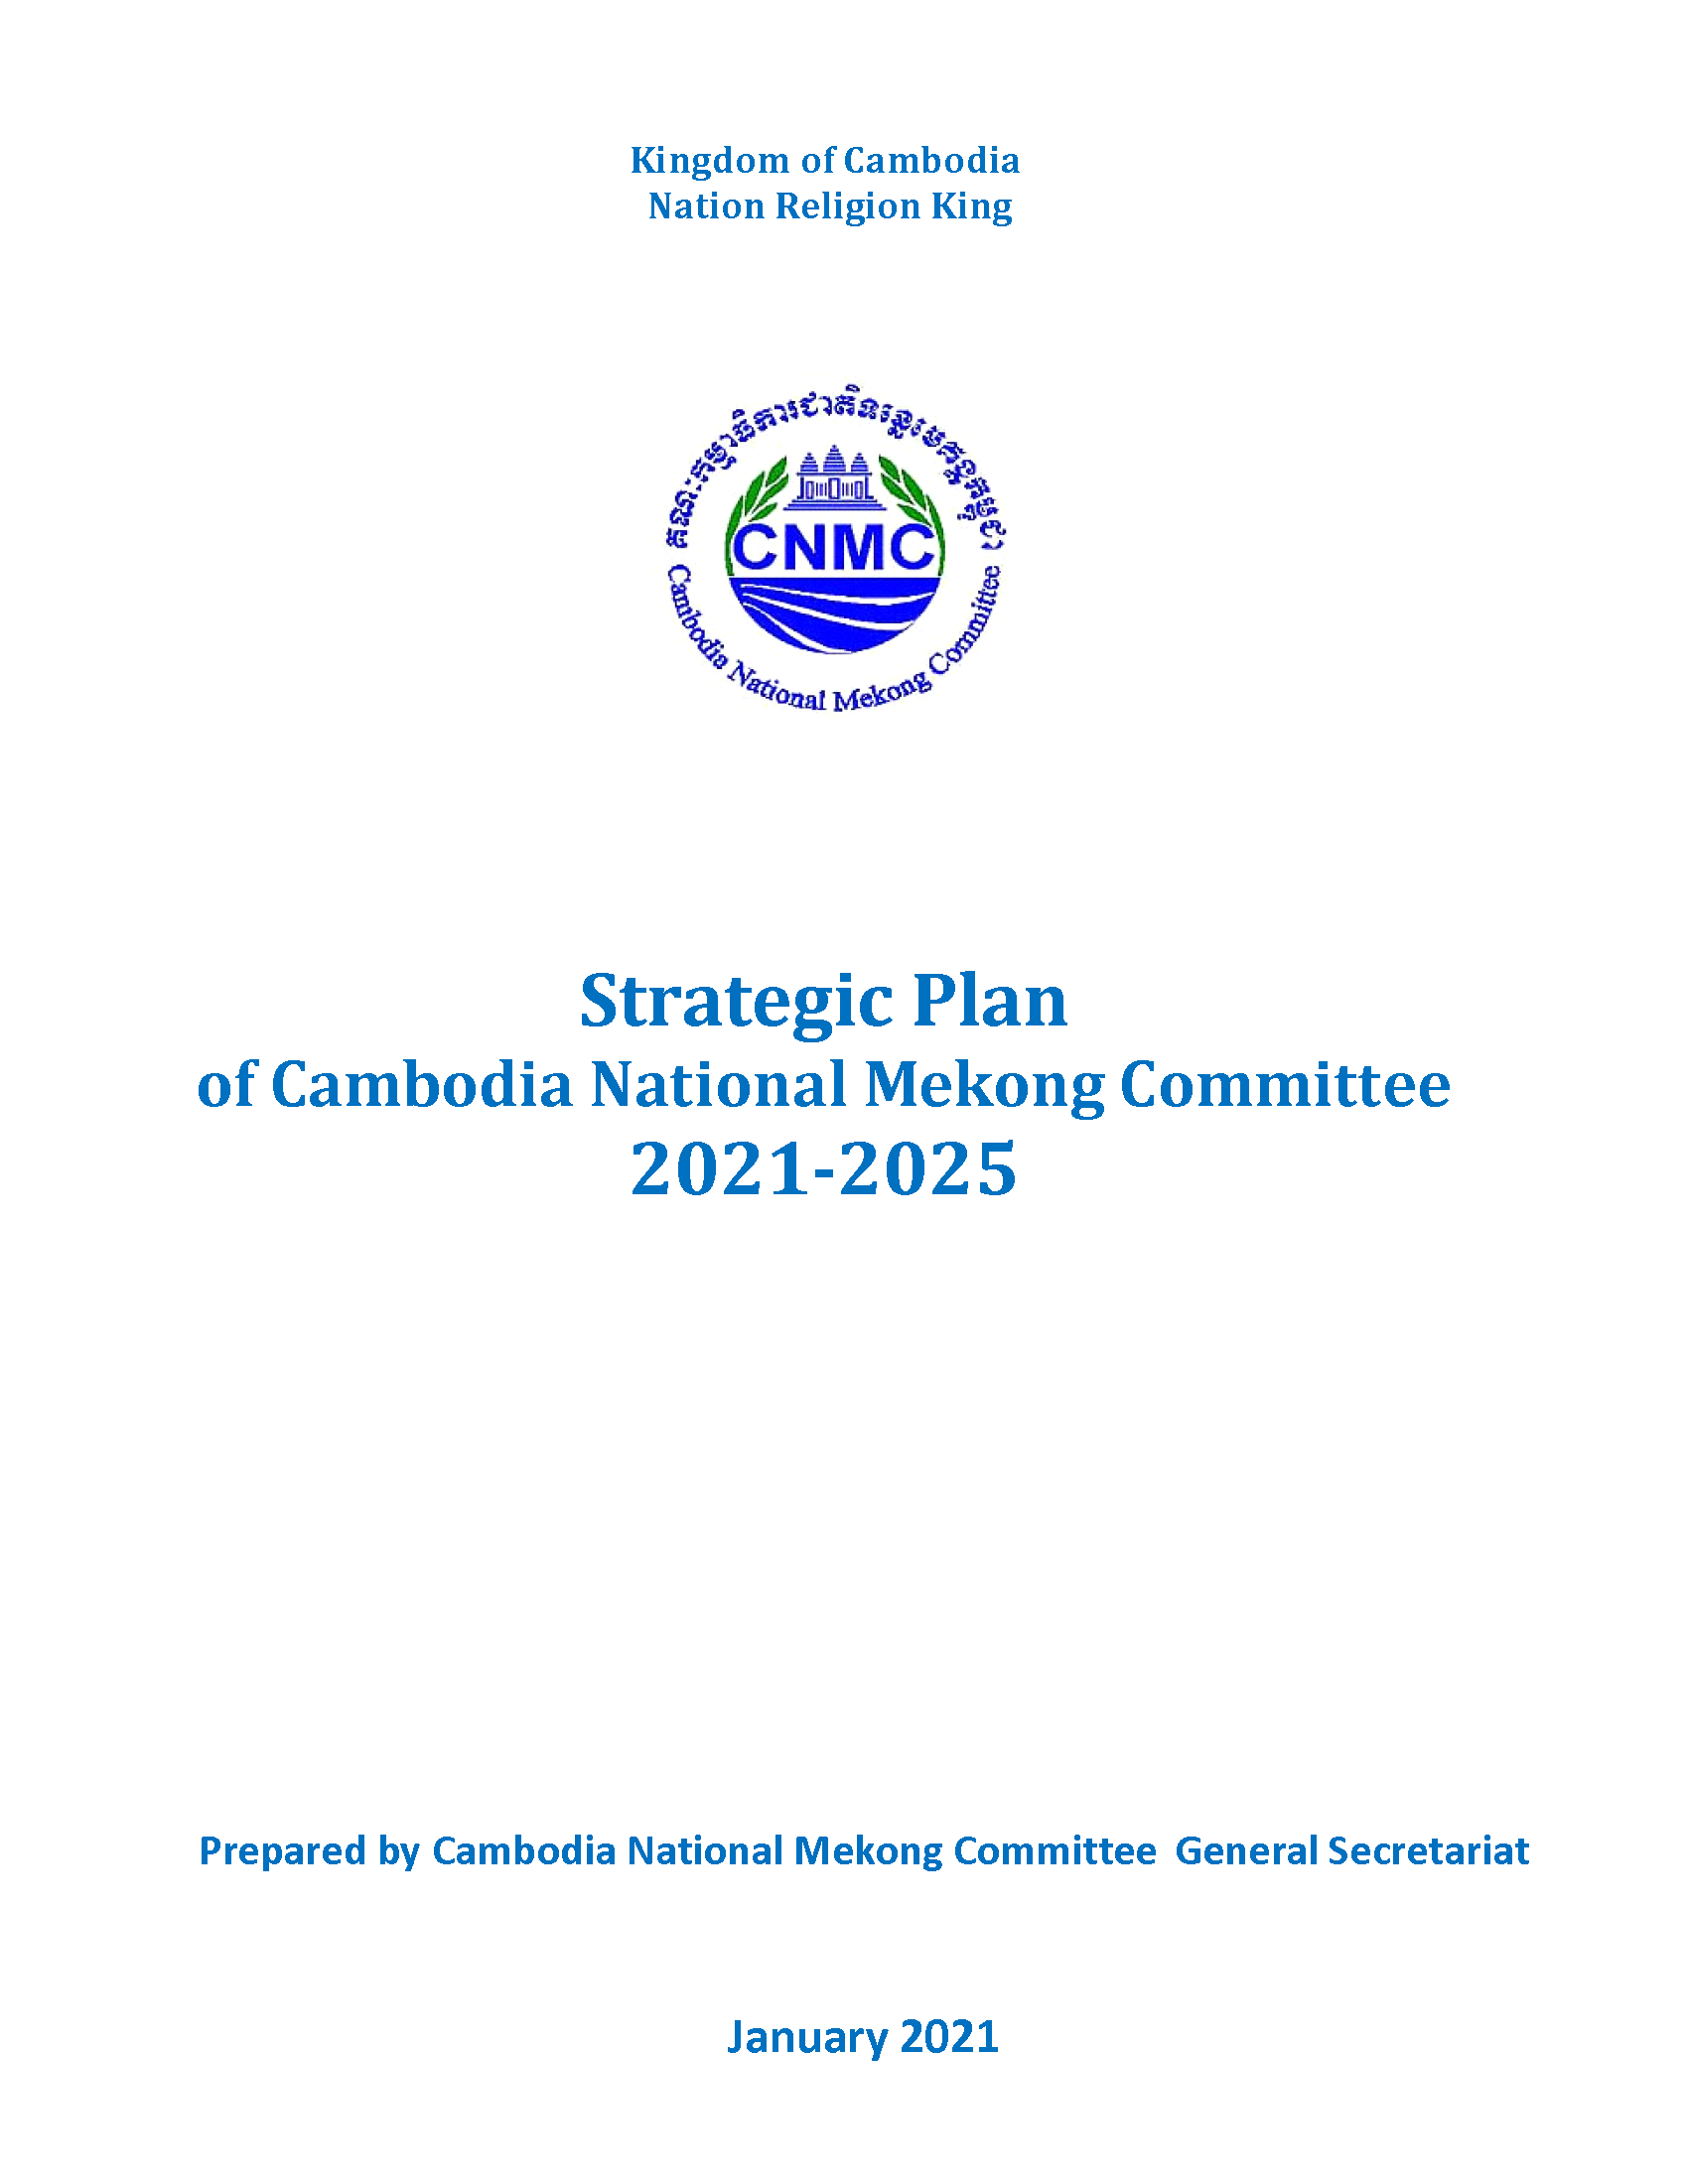 Strategic Plan of Cambodia National Committee 2021-2025